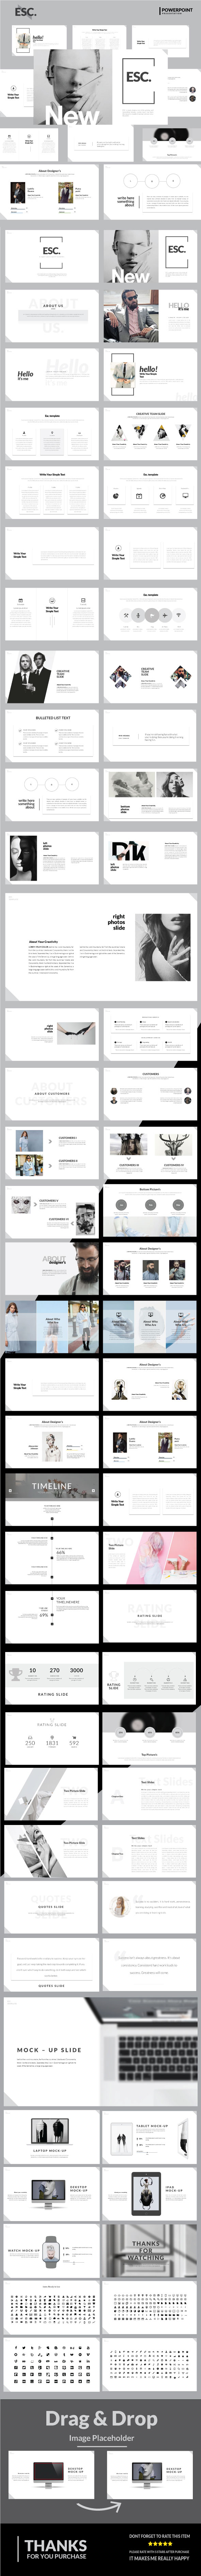 Esc - Minimal Multipurpose Presentation Template - PowerPoint Templates Presentation Templates